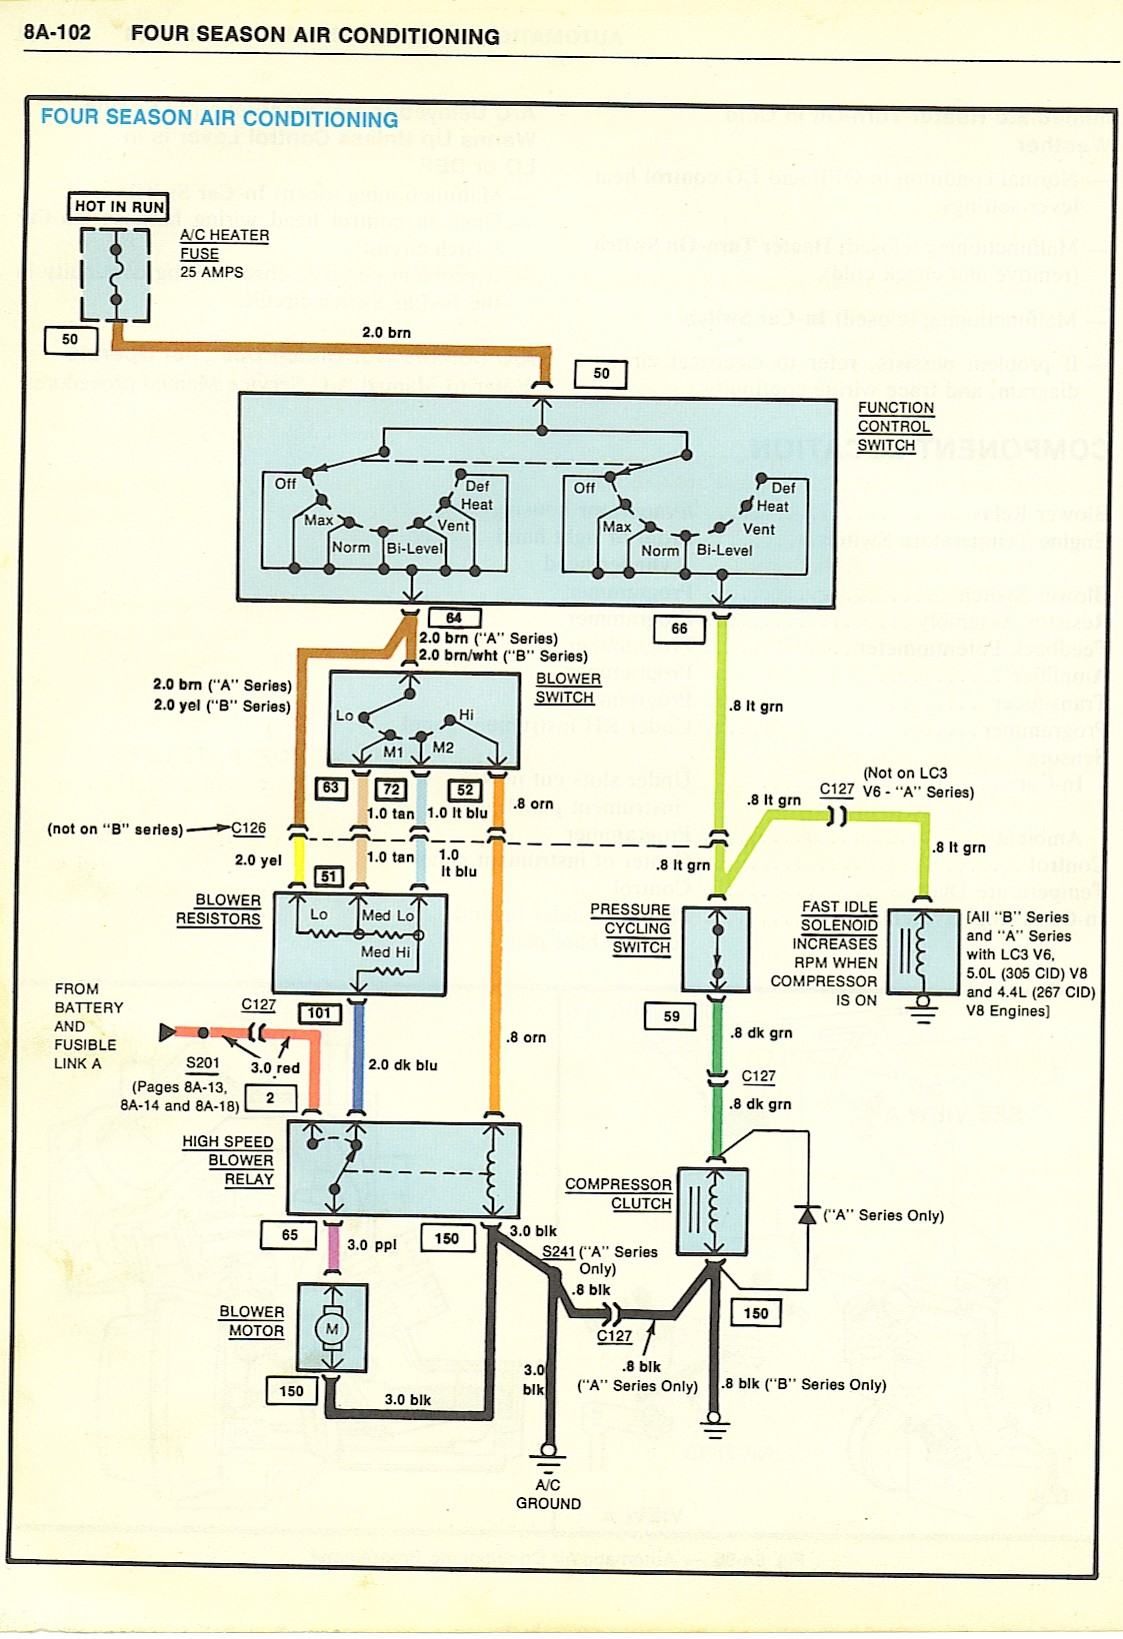 small resolution of 1970 chevelle heater ac wiring diagram wiring library 1970 chevelle heater ac wiring diagram